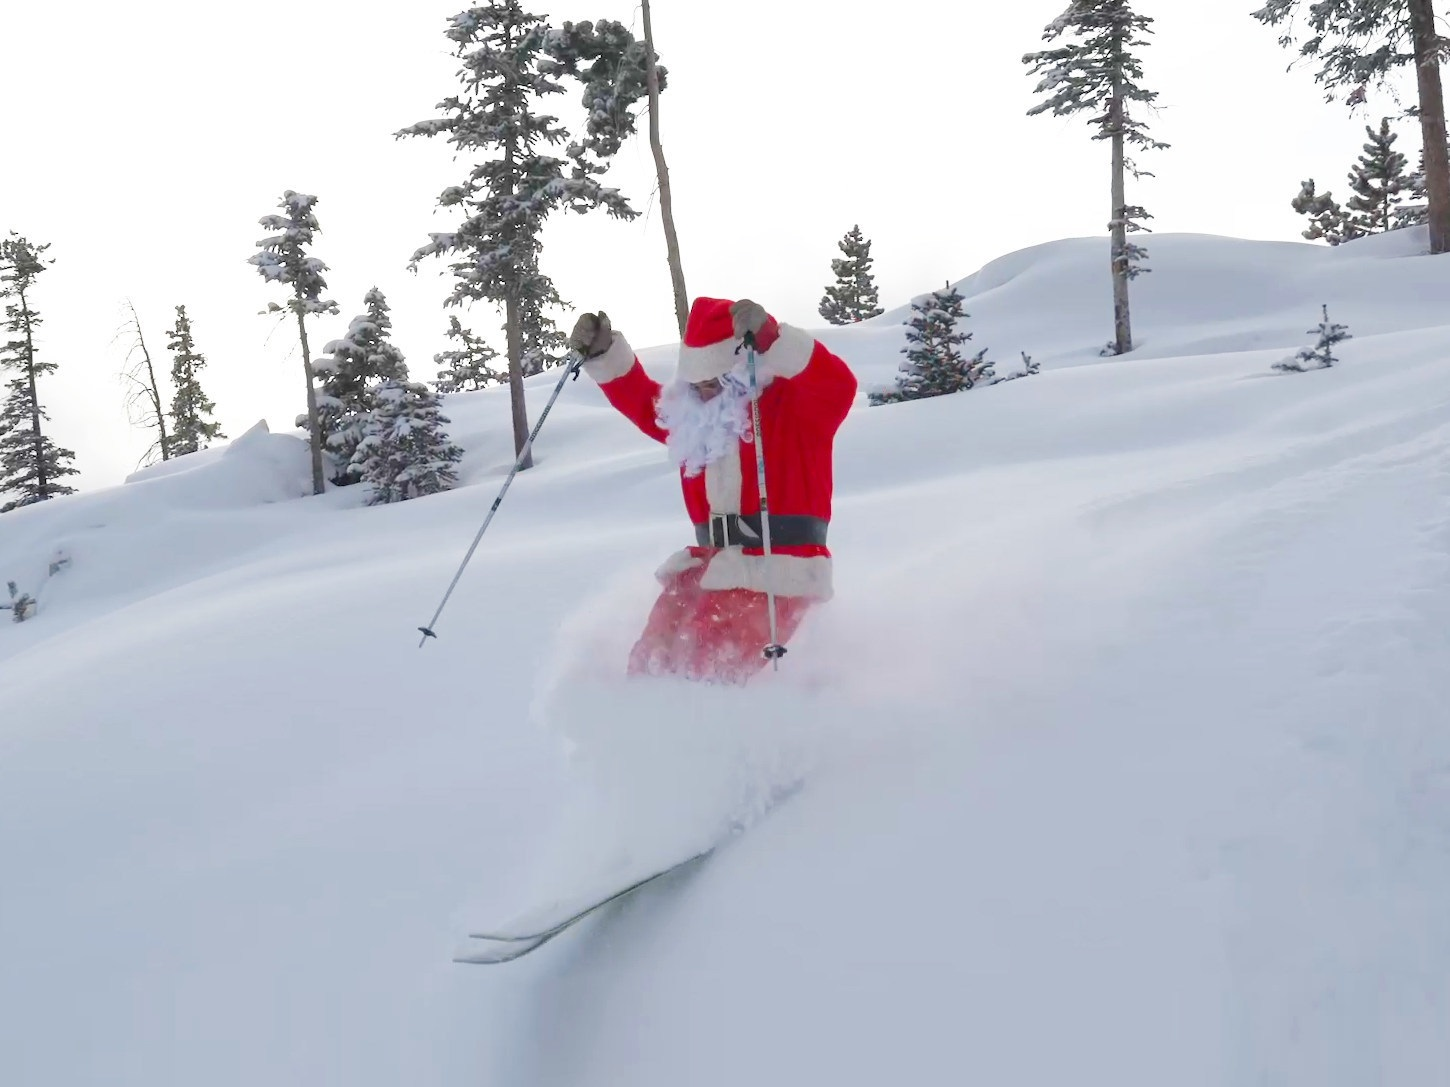 Santa takes a break from Christmas Eve preparations to venture out on the slopes of Winter Park Resort in Colorado.